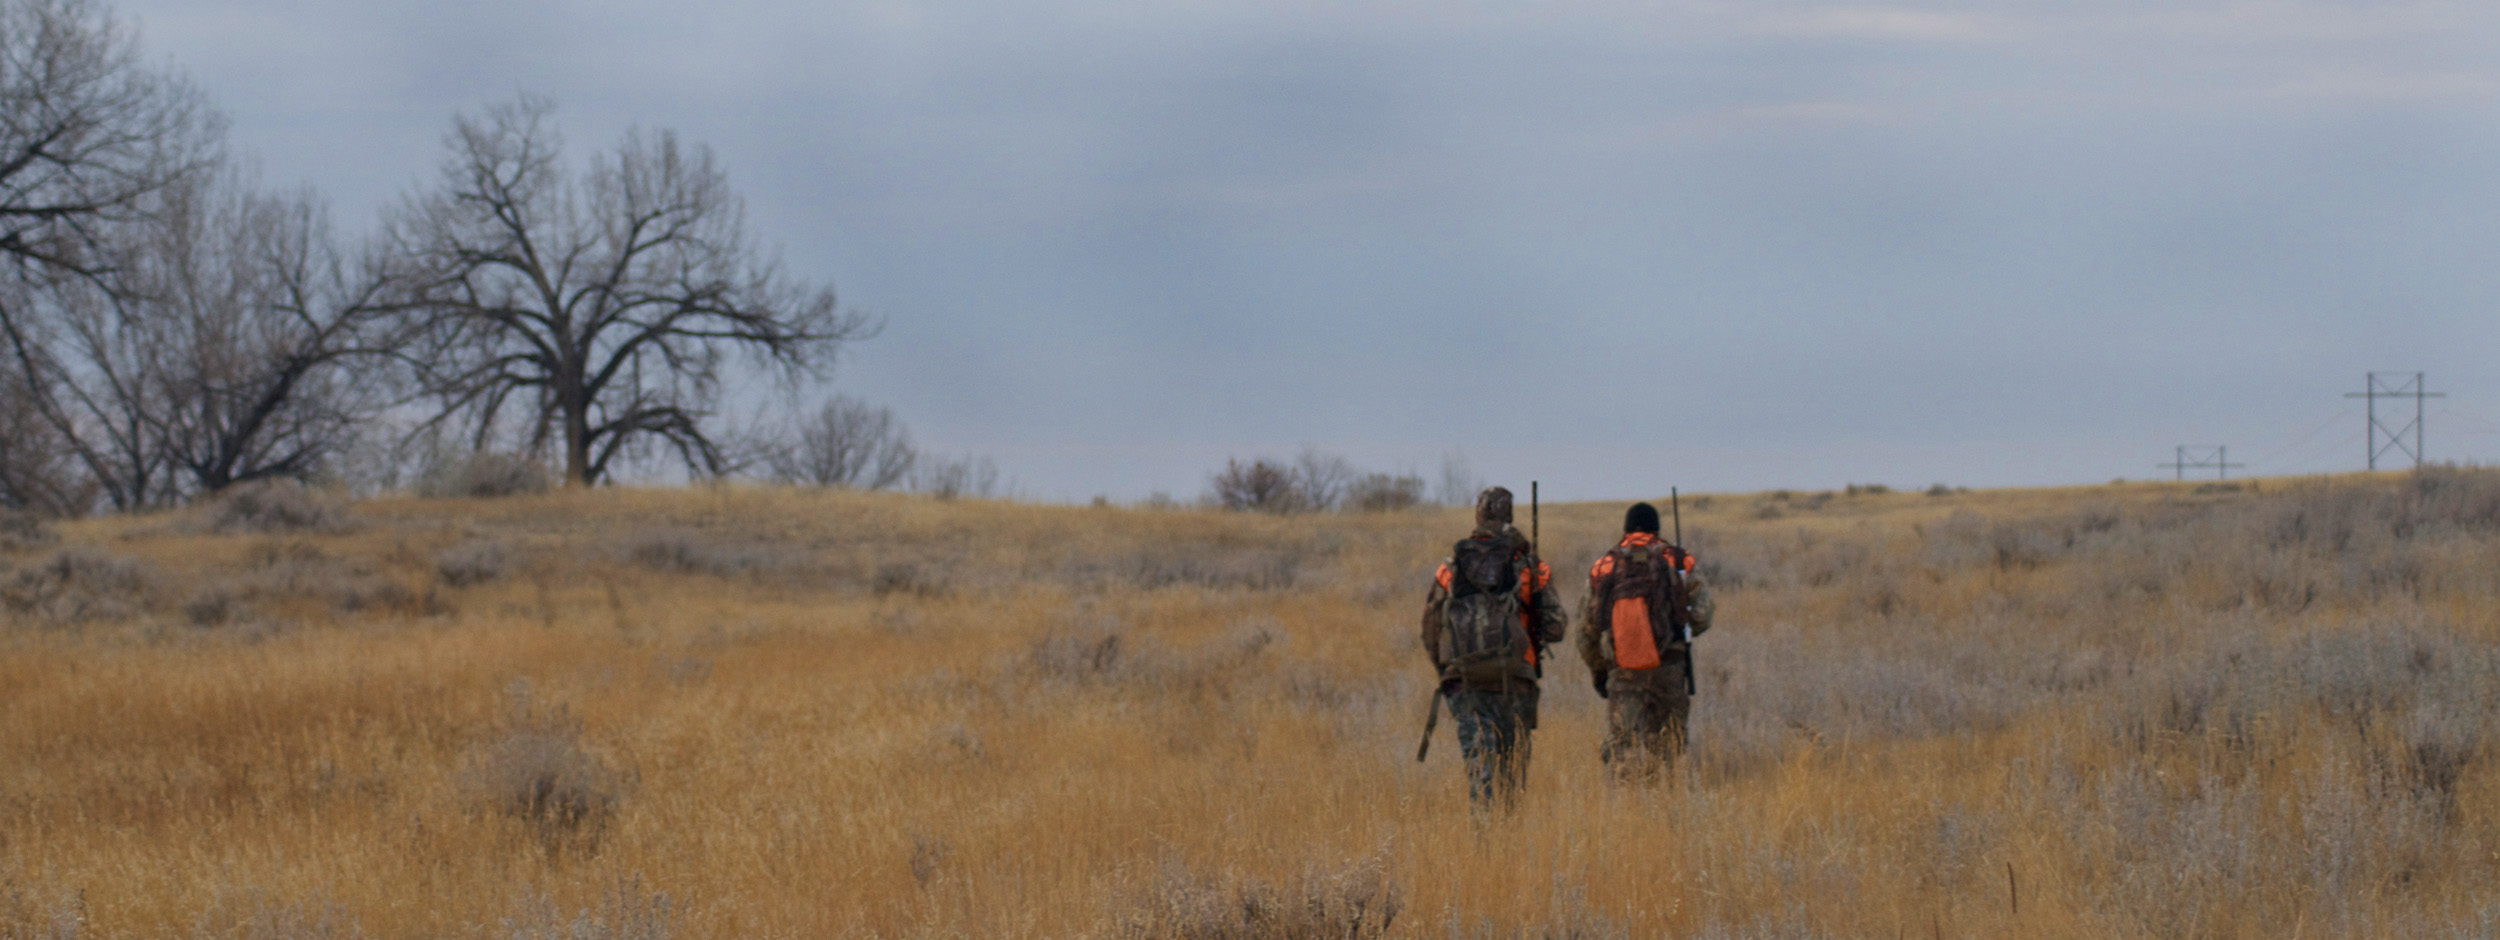 Coyote hunting, deer, Montana, Montana Wild, mule deer, rifle, calling coyotes, Missoula, Havre, MT, Remington